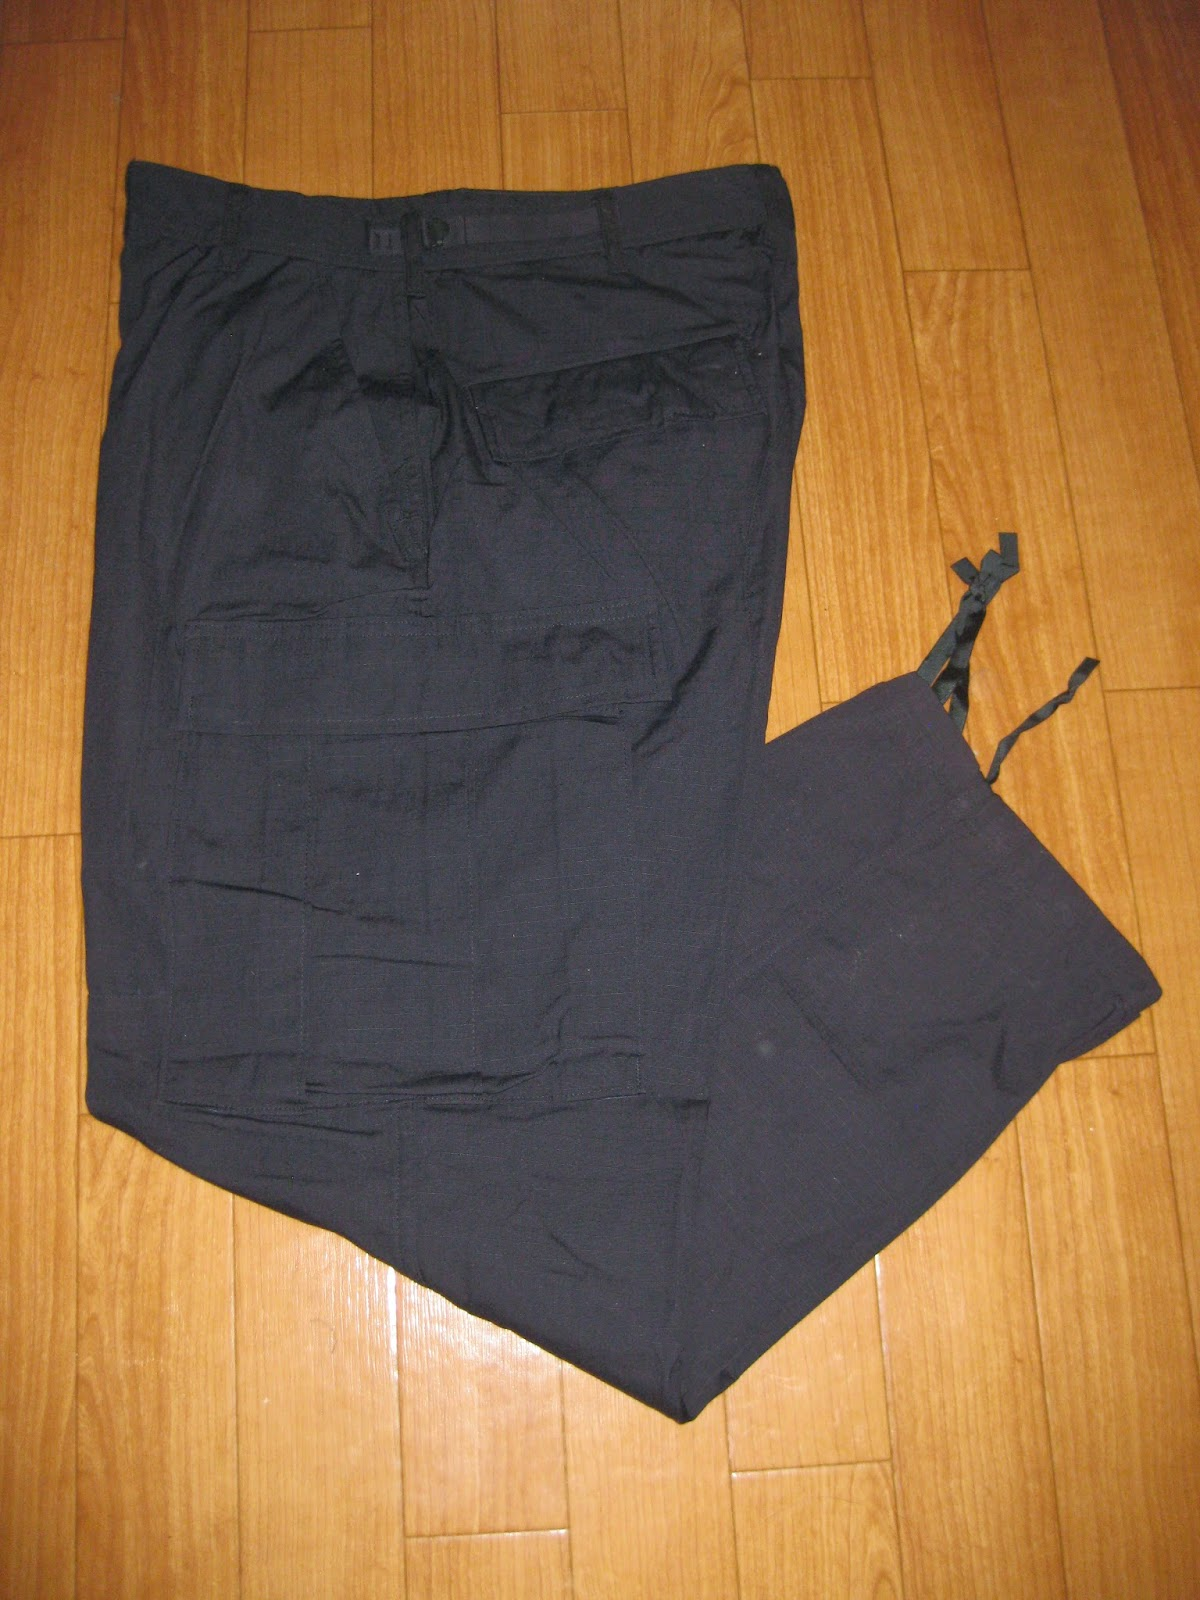 1997's DEAD STOCK        U.S.MILITARY          BLACK RIP-STOP        6 POCKETS PANTS